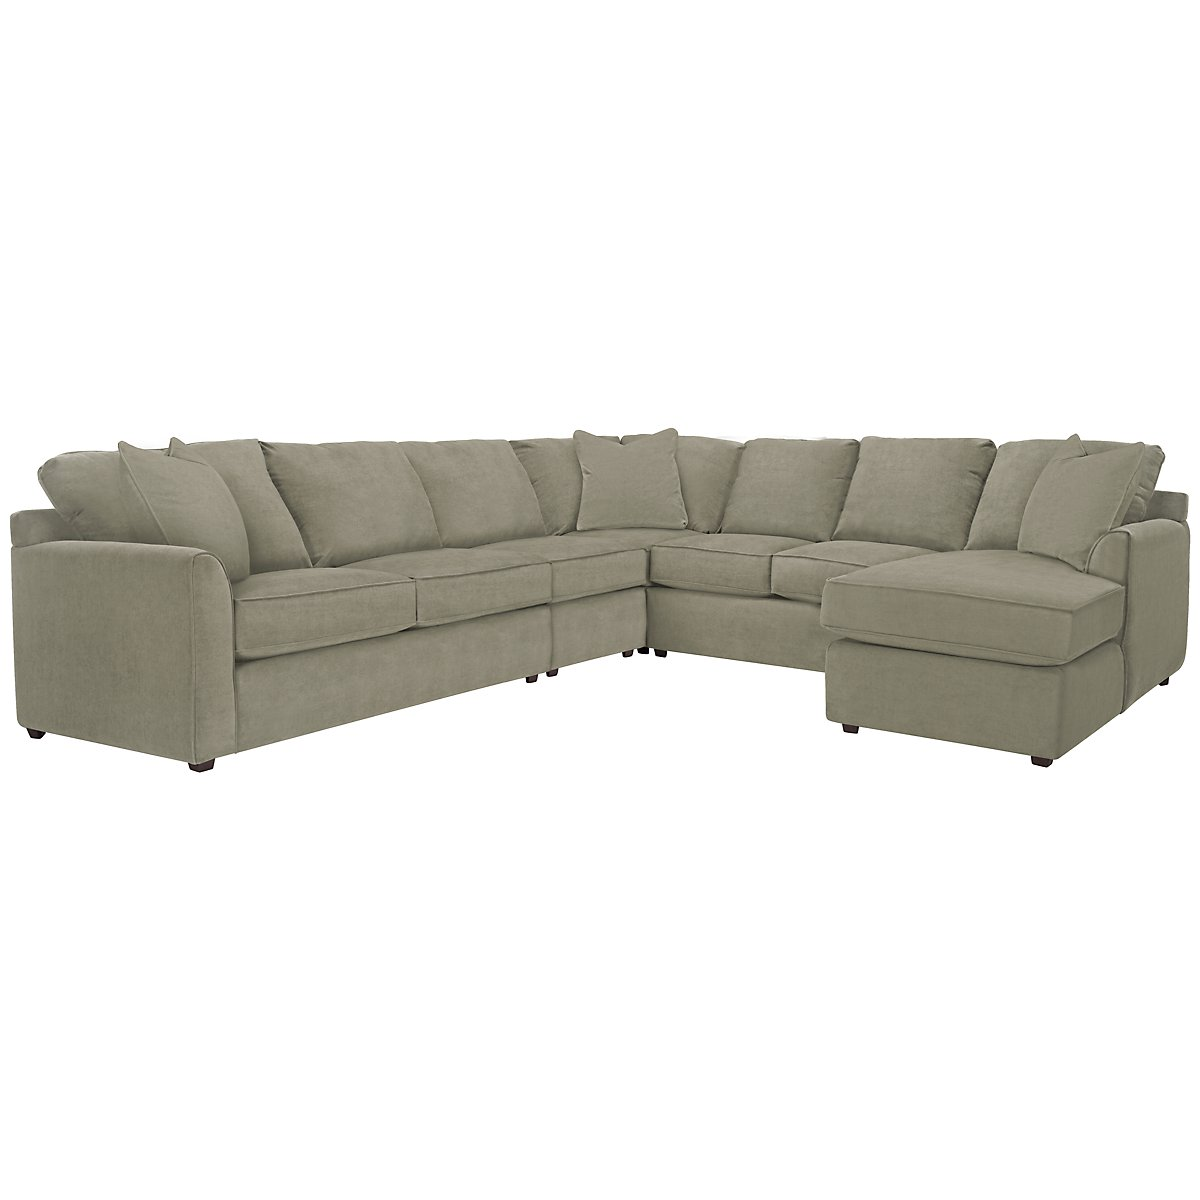 Express3 Light Green Microfiber Large Right Chaise Sectional